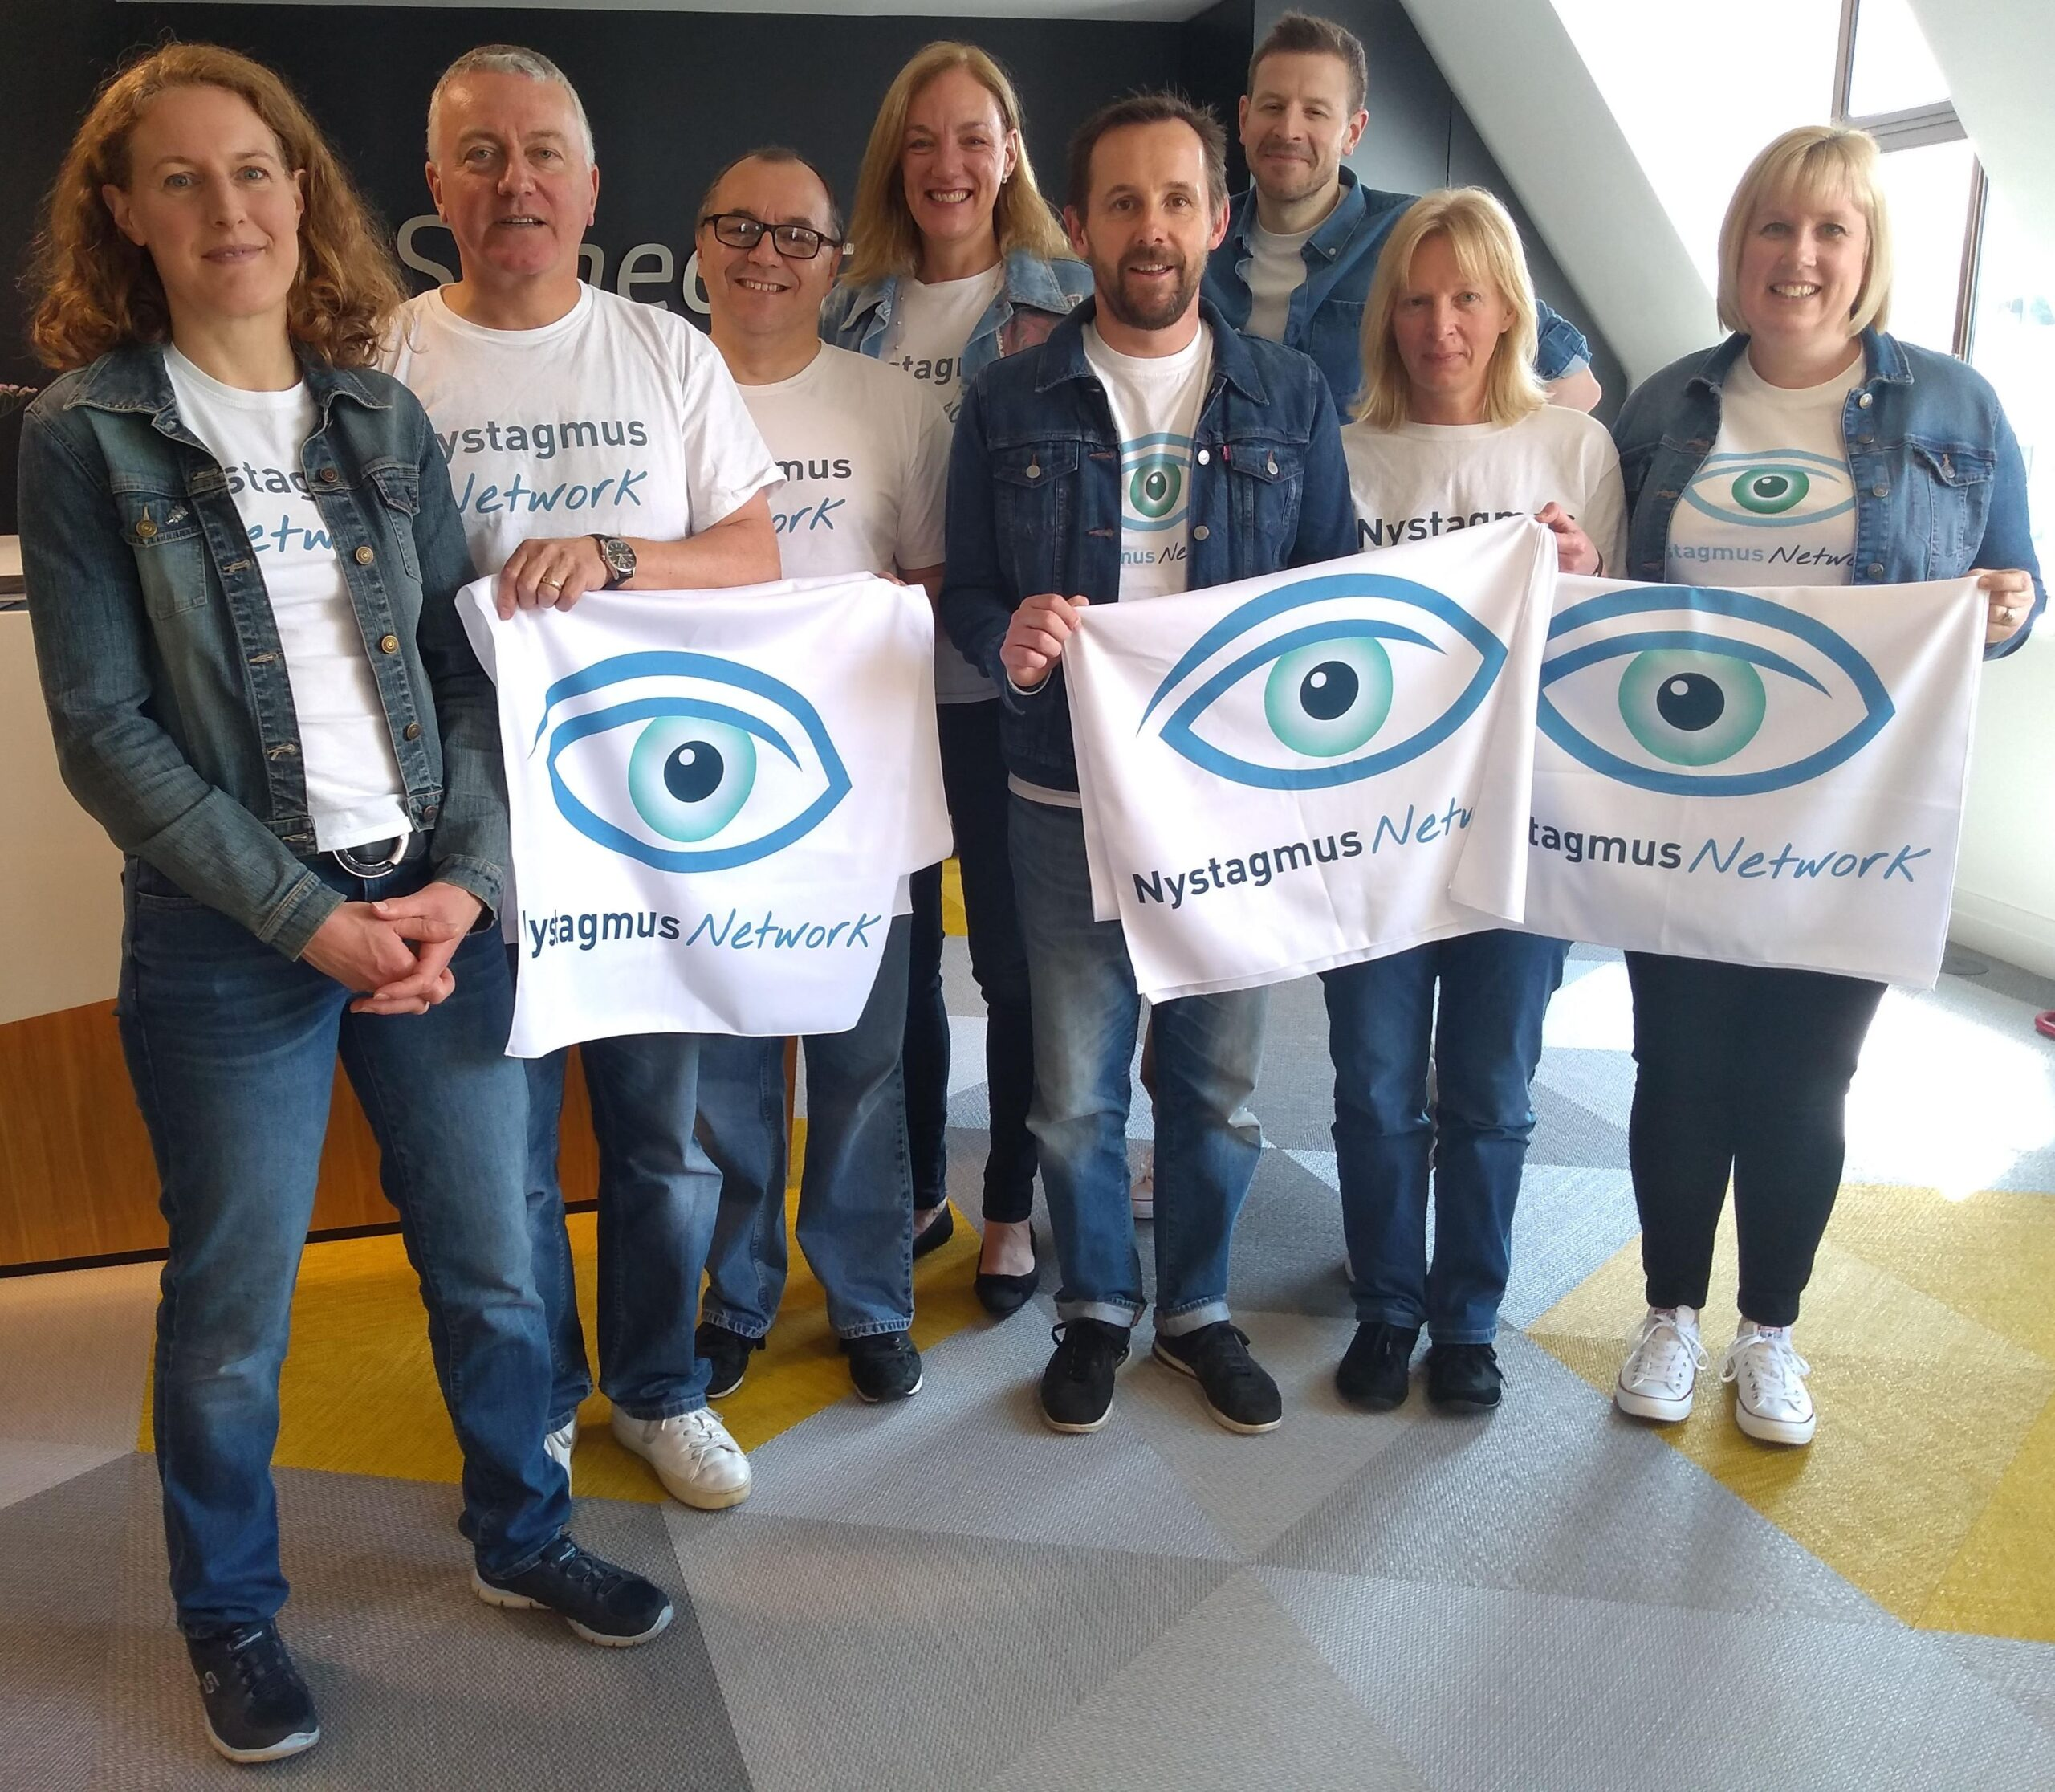 The Nystagmus Network trsutees and staff hold Nystagmus Network banners and smile at the camera.